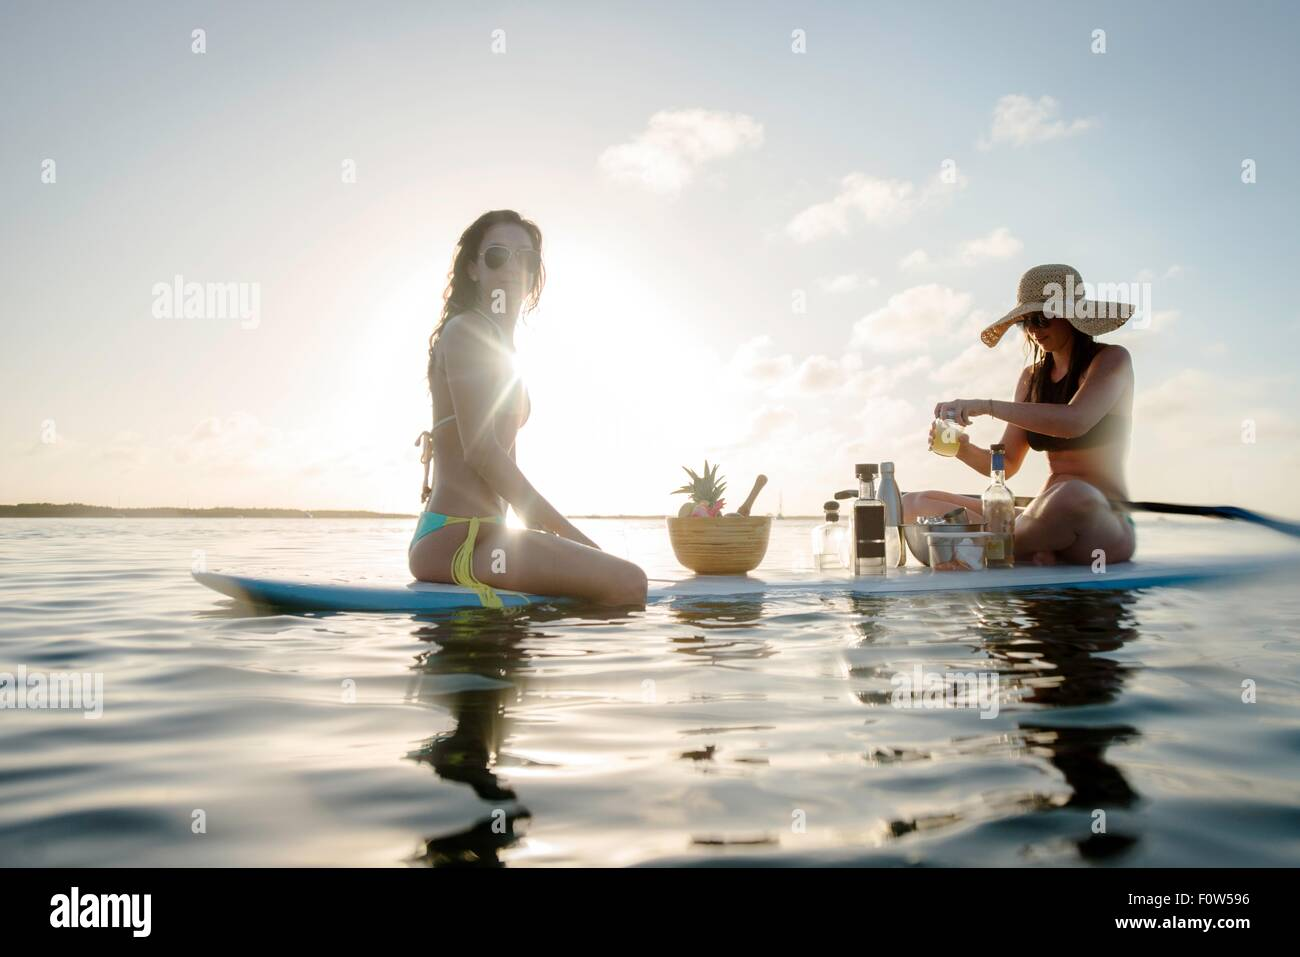 Two young women preparing cocktails on paddleboard, Islamorada, Florida, USA - Stock Image